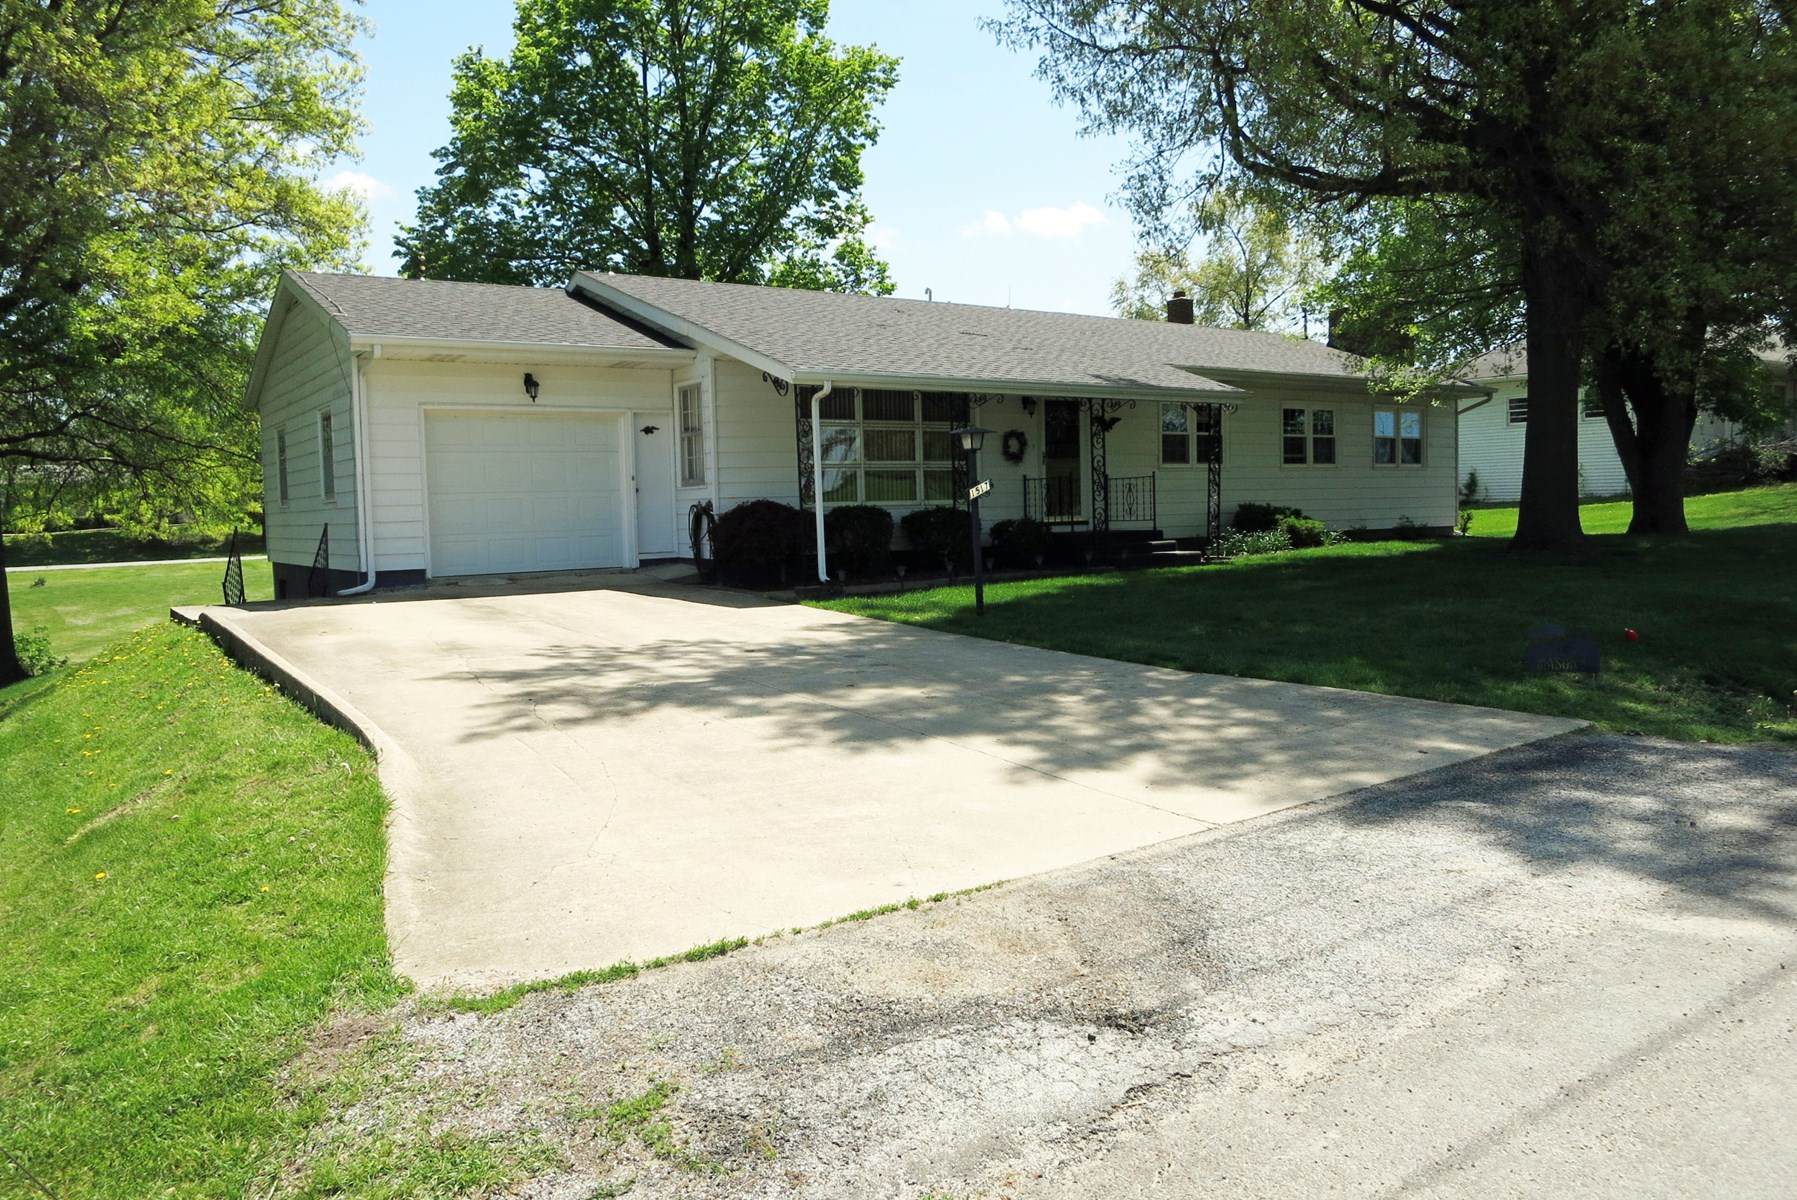 Ranch Home For Sale in Bethany Missouri